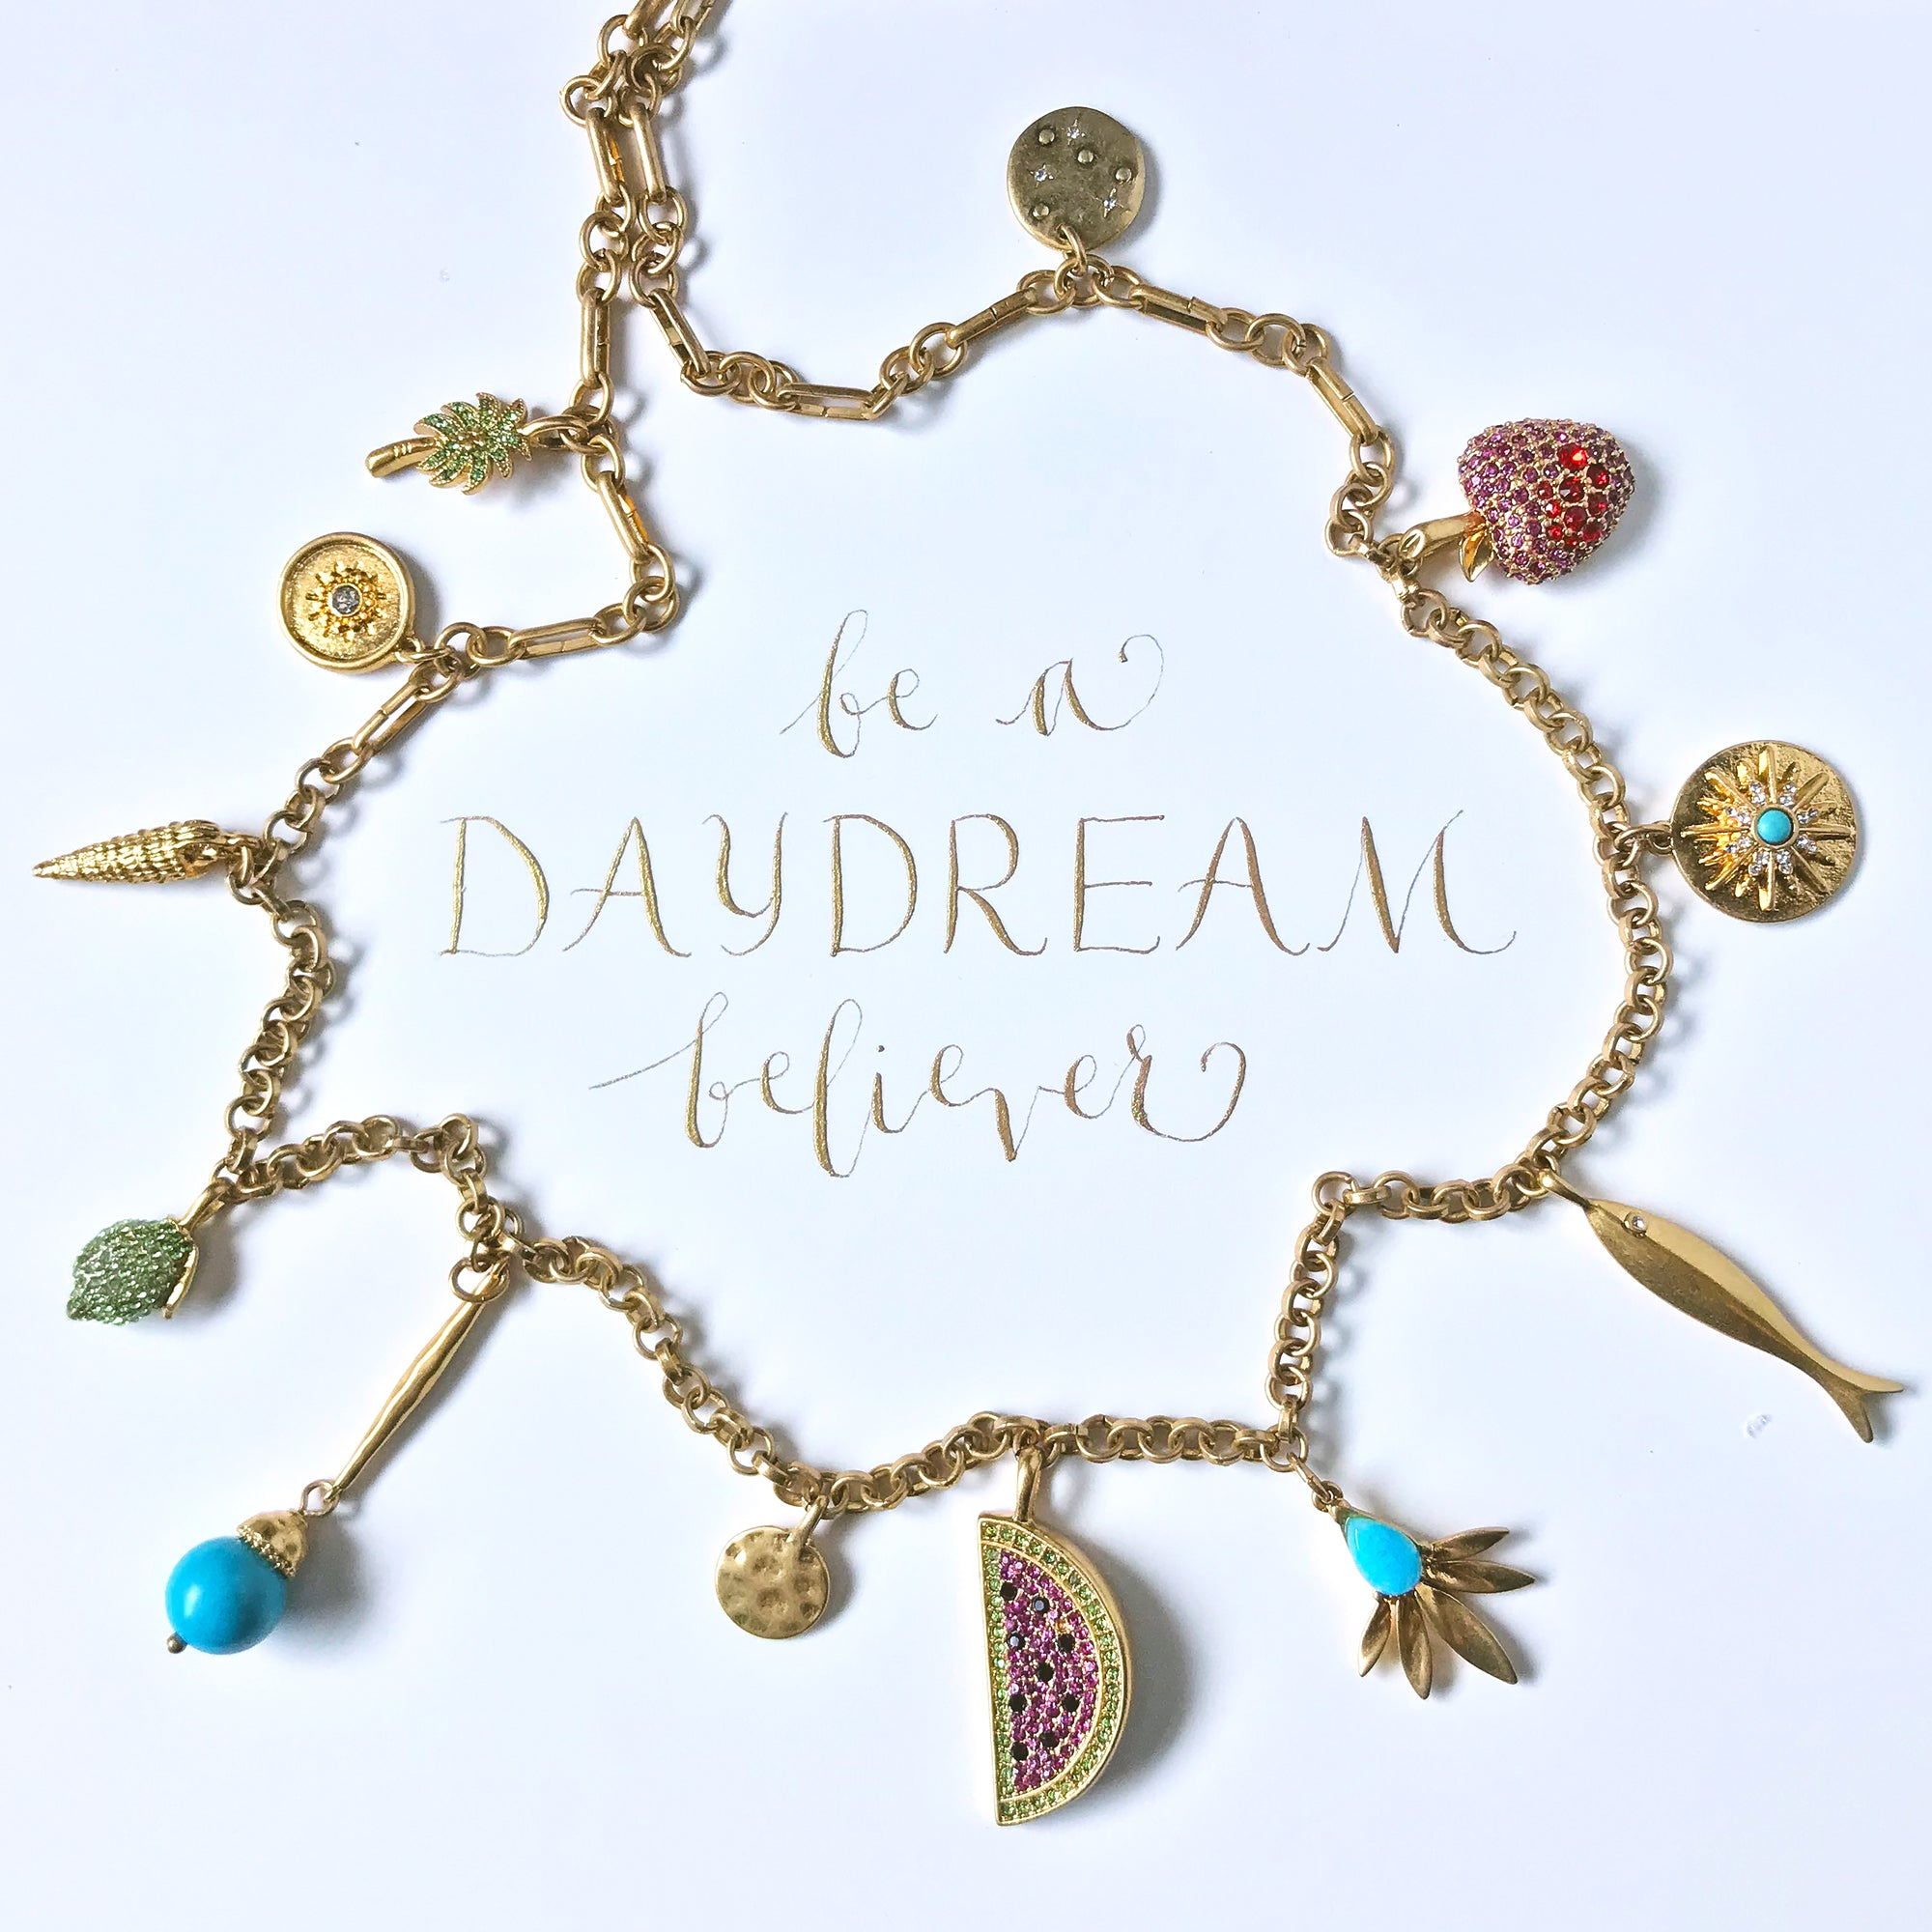 #SequinSayings - Be a Daydream Believer